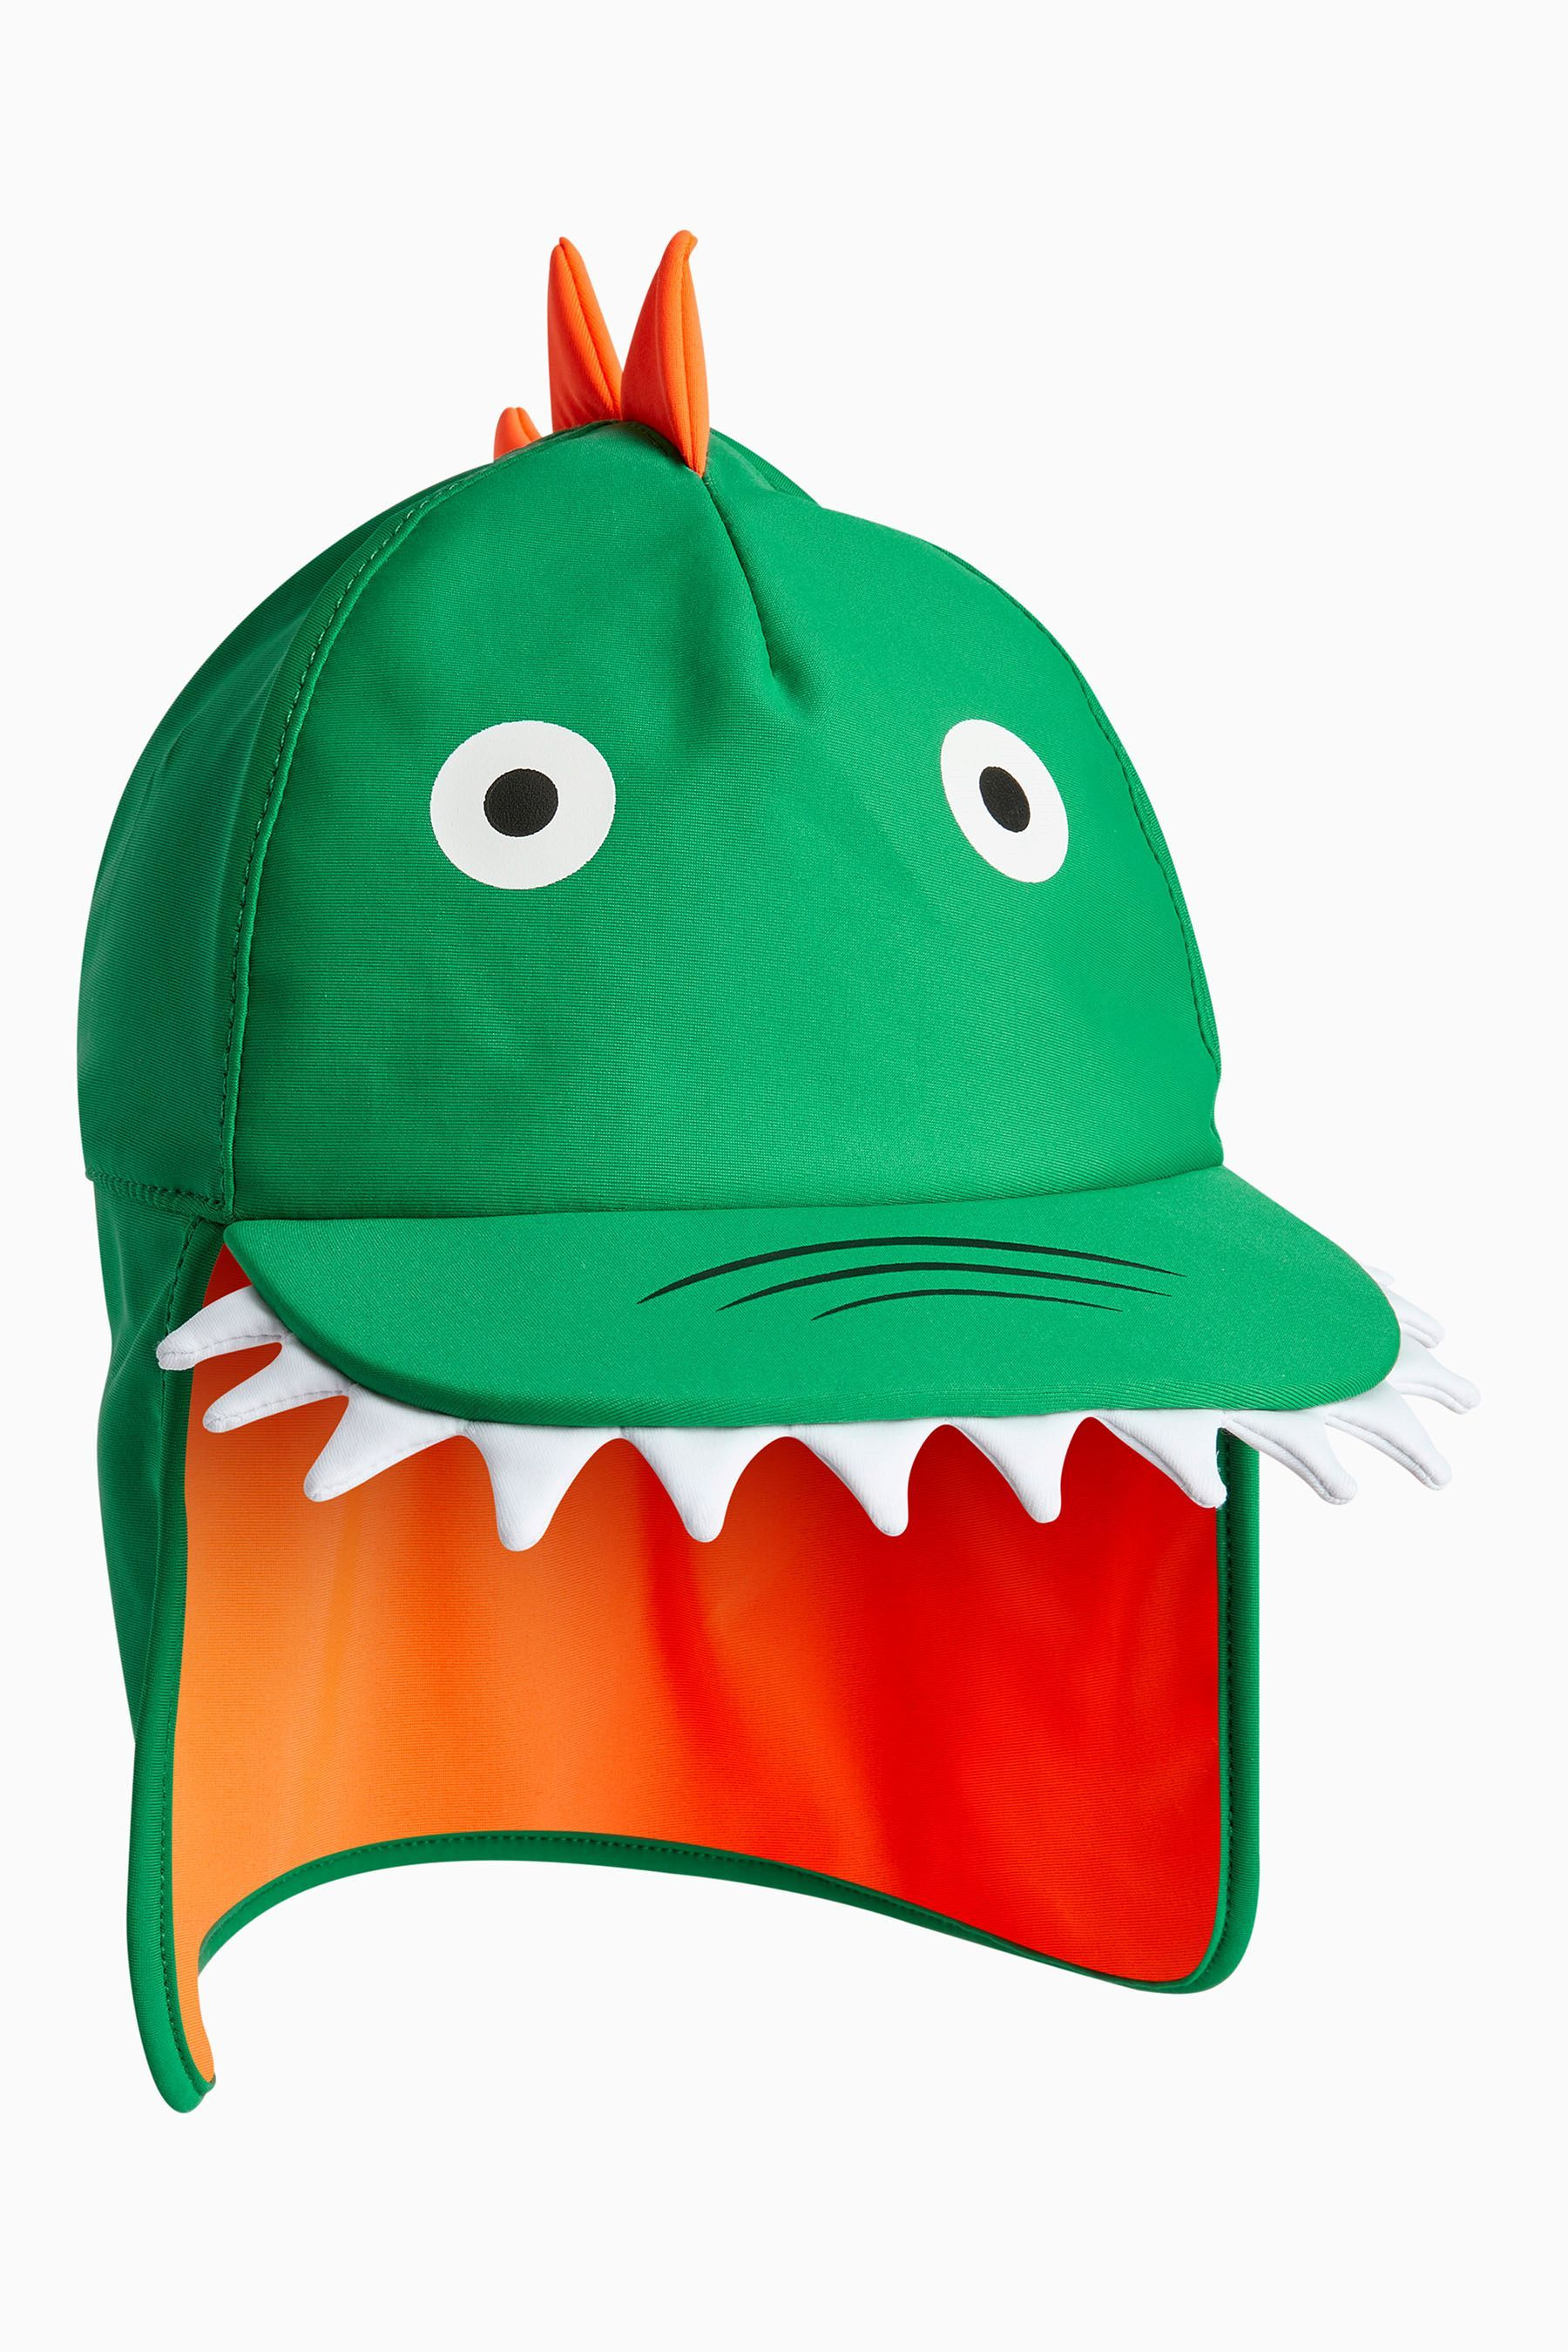 Boys Next Green Lizard Legionnaire Hat (Younger) - Green